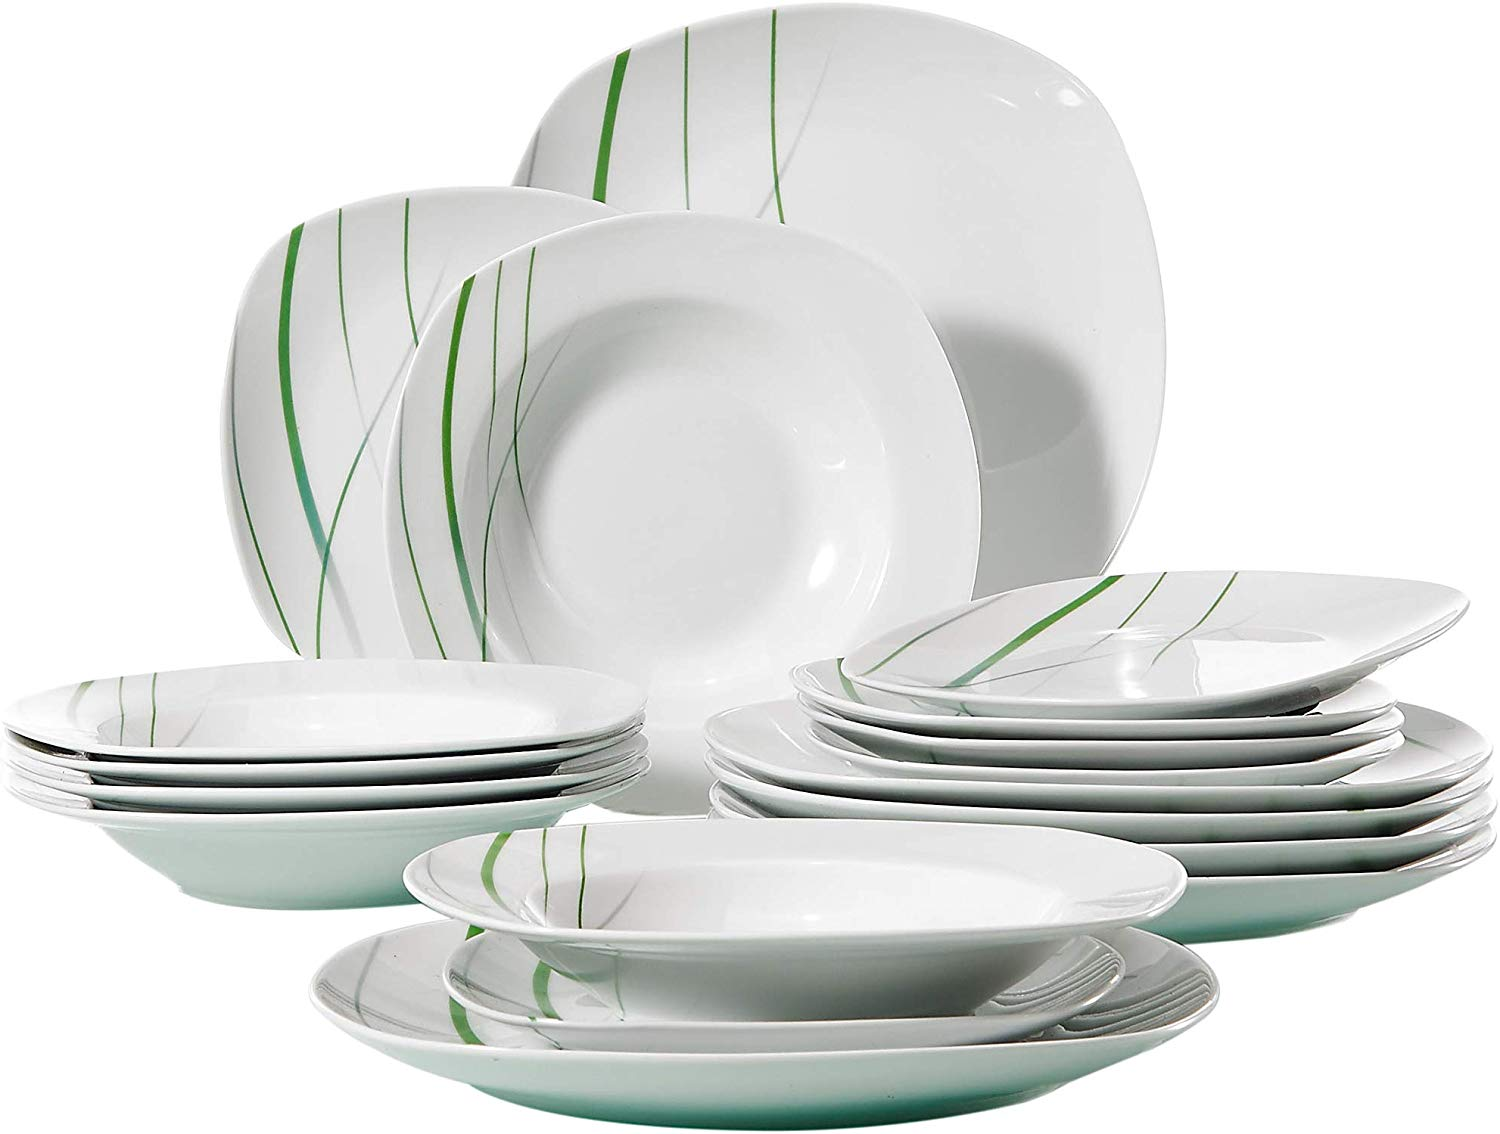 VEWEET 18-Piece Ceramic Stoneware Dinnerware Set Ivory White Plate Sets Green Stripe Patterns, Service for 6 Dinner Plate, Salad Plate, Dessert Plate